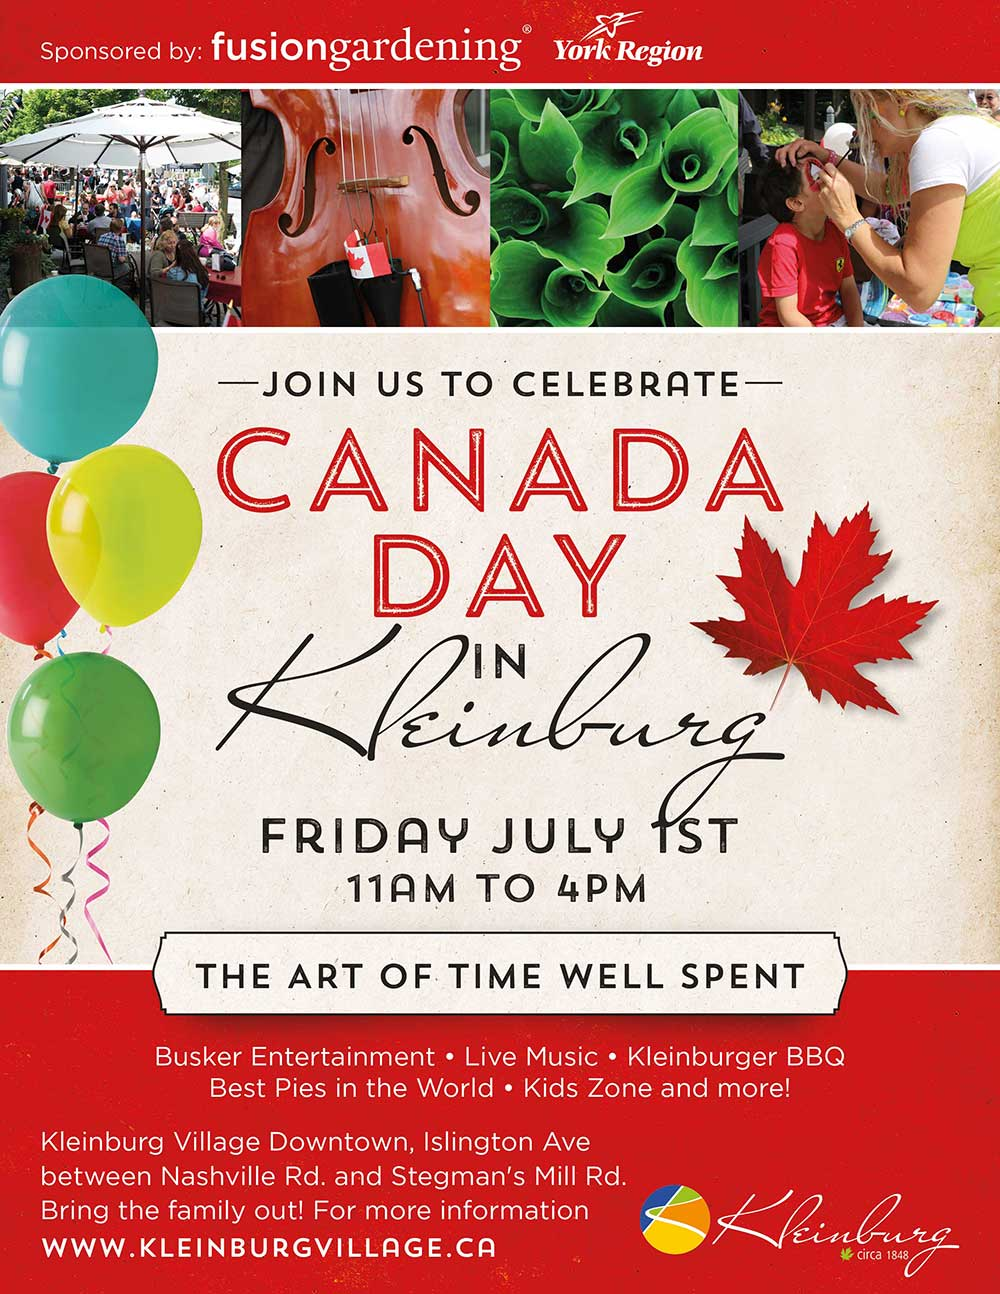 CanadaDay-event-image